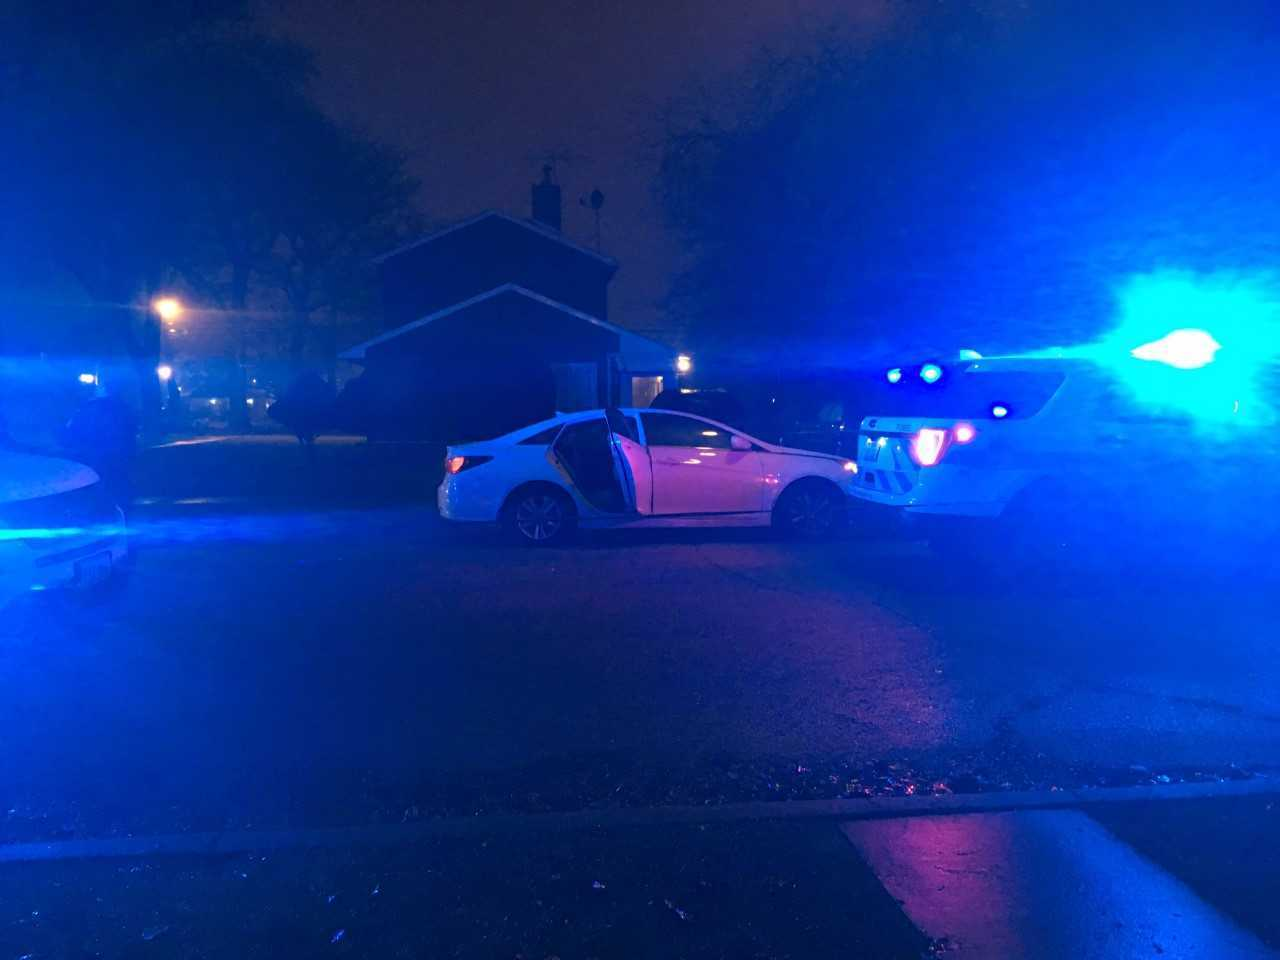 Police find 1-year-old boy safe after he was taken in car ...